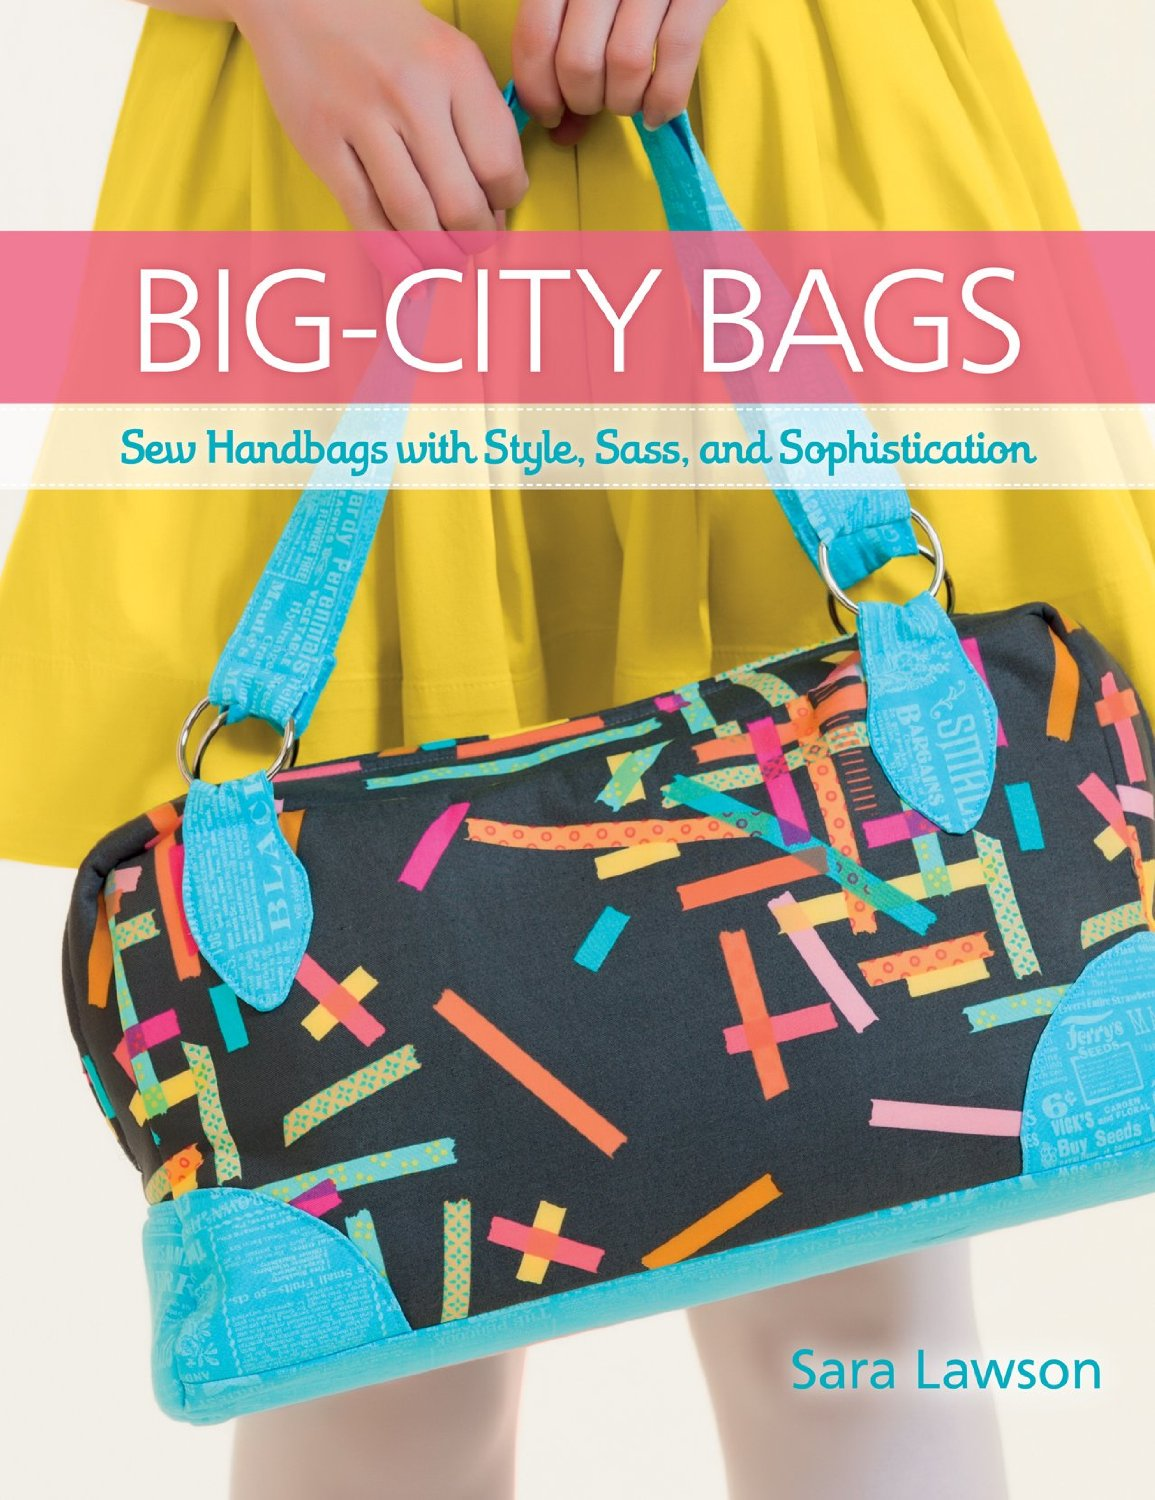 BIg-City Bags by Sara Lawson is on AMAZON!!!!! WOOT WOOT!   Go-Go Kim